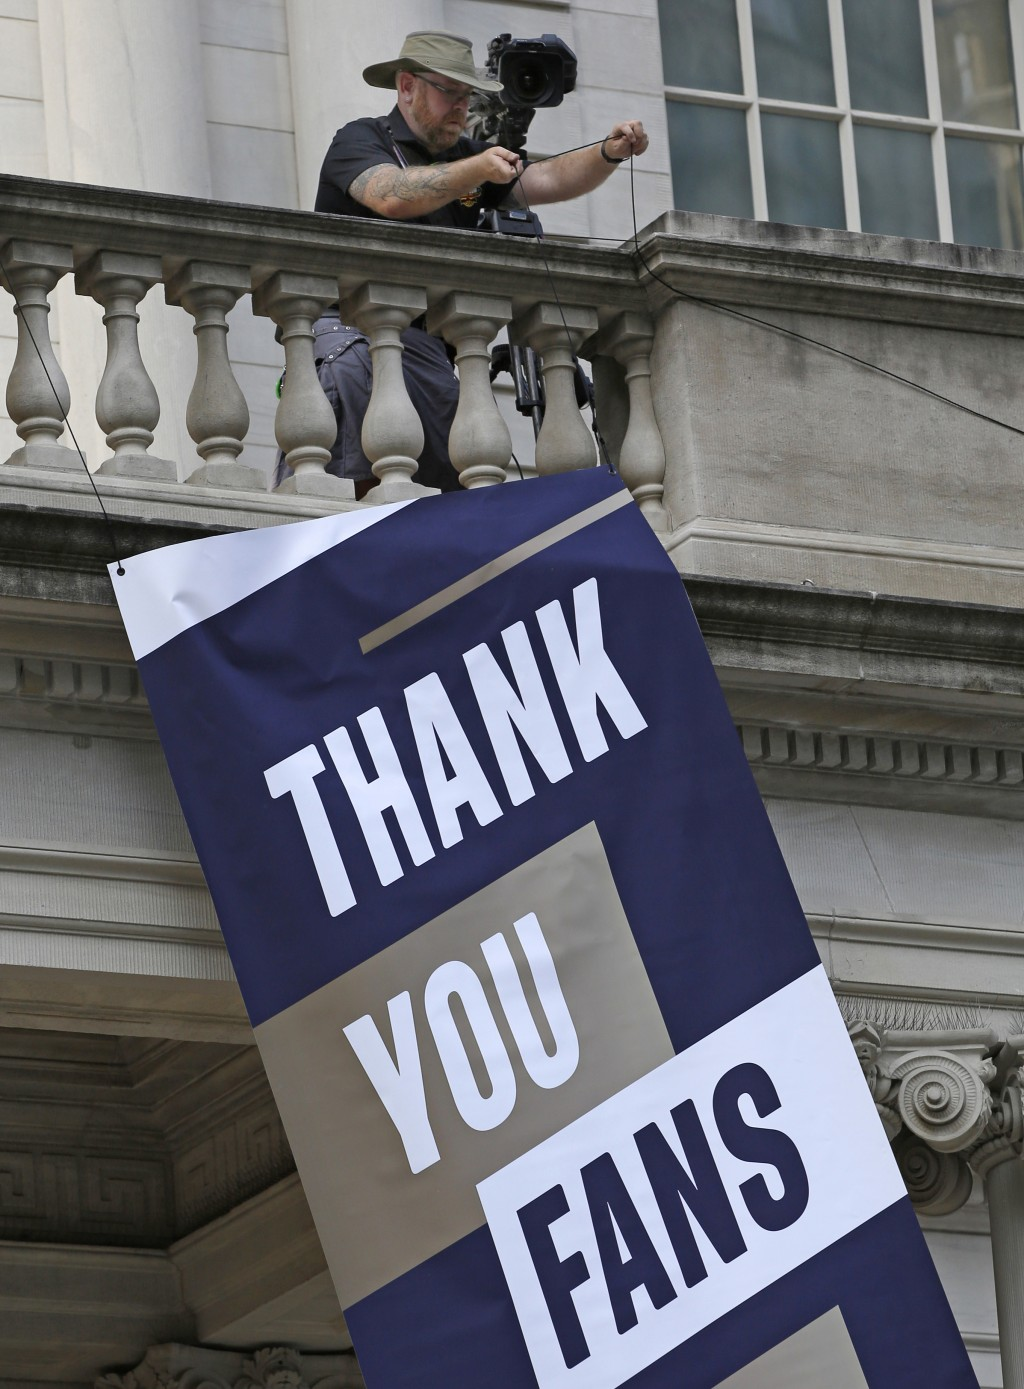 A worker hangs a banner from the balcony at New York City Hall, one day ahead of a ticker-tape parade and ceremony planned for the four-time World Cup